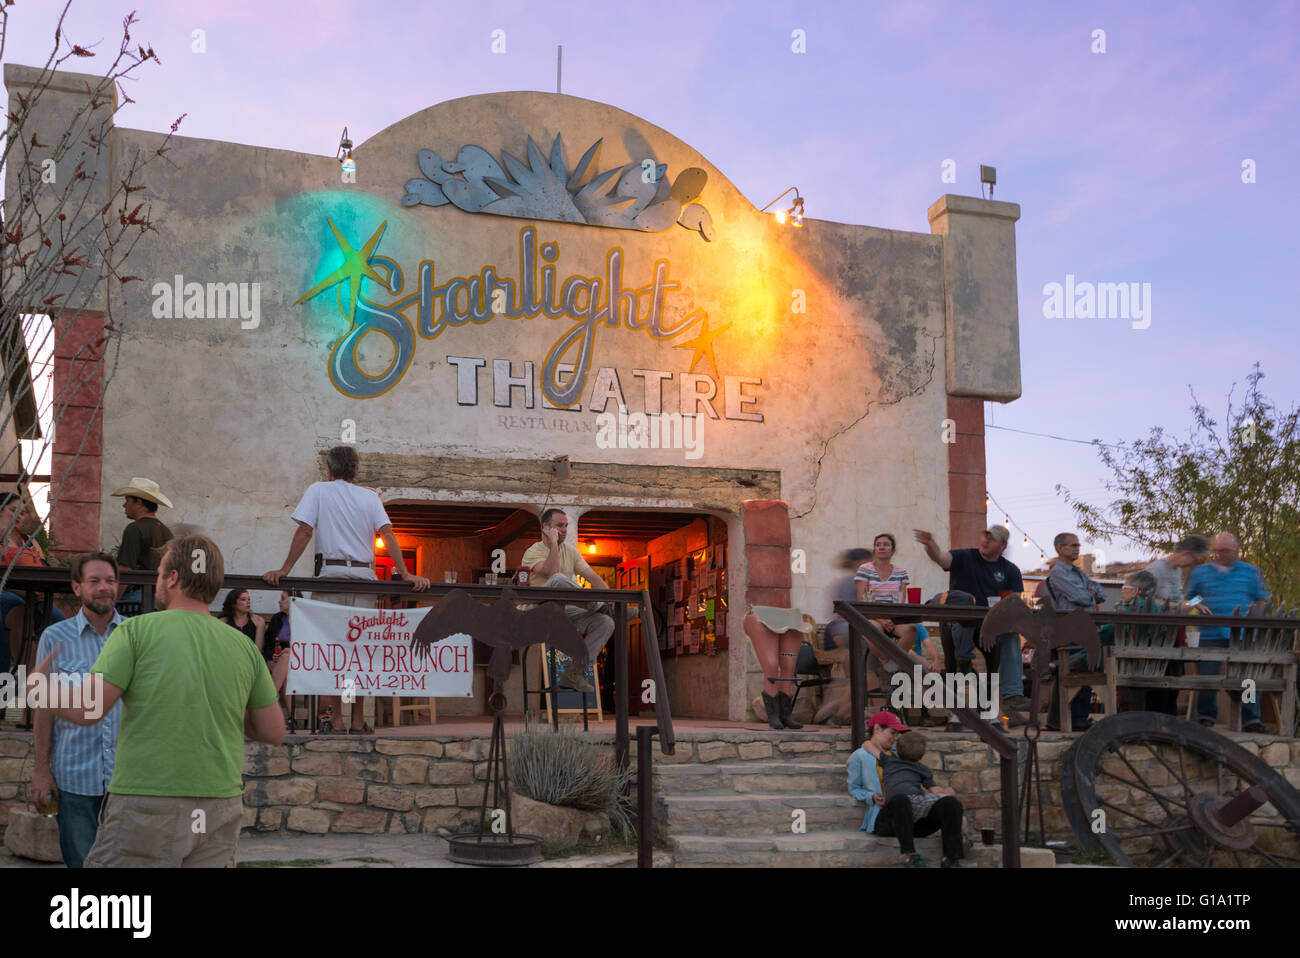 Starlight Theatre Restaurant And Saloon In Terlingua, Texas.   Stock Image